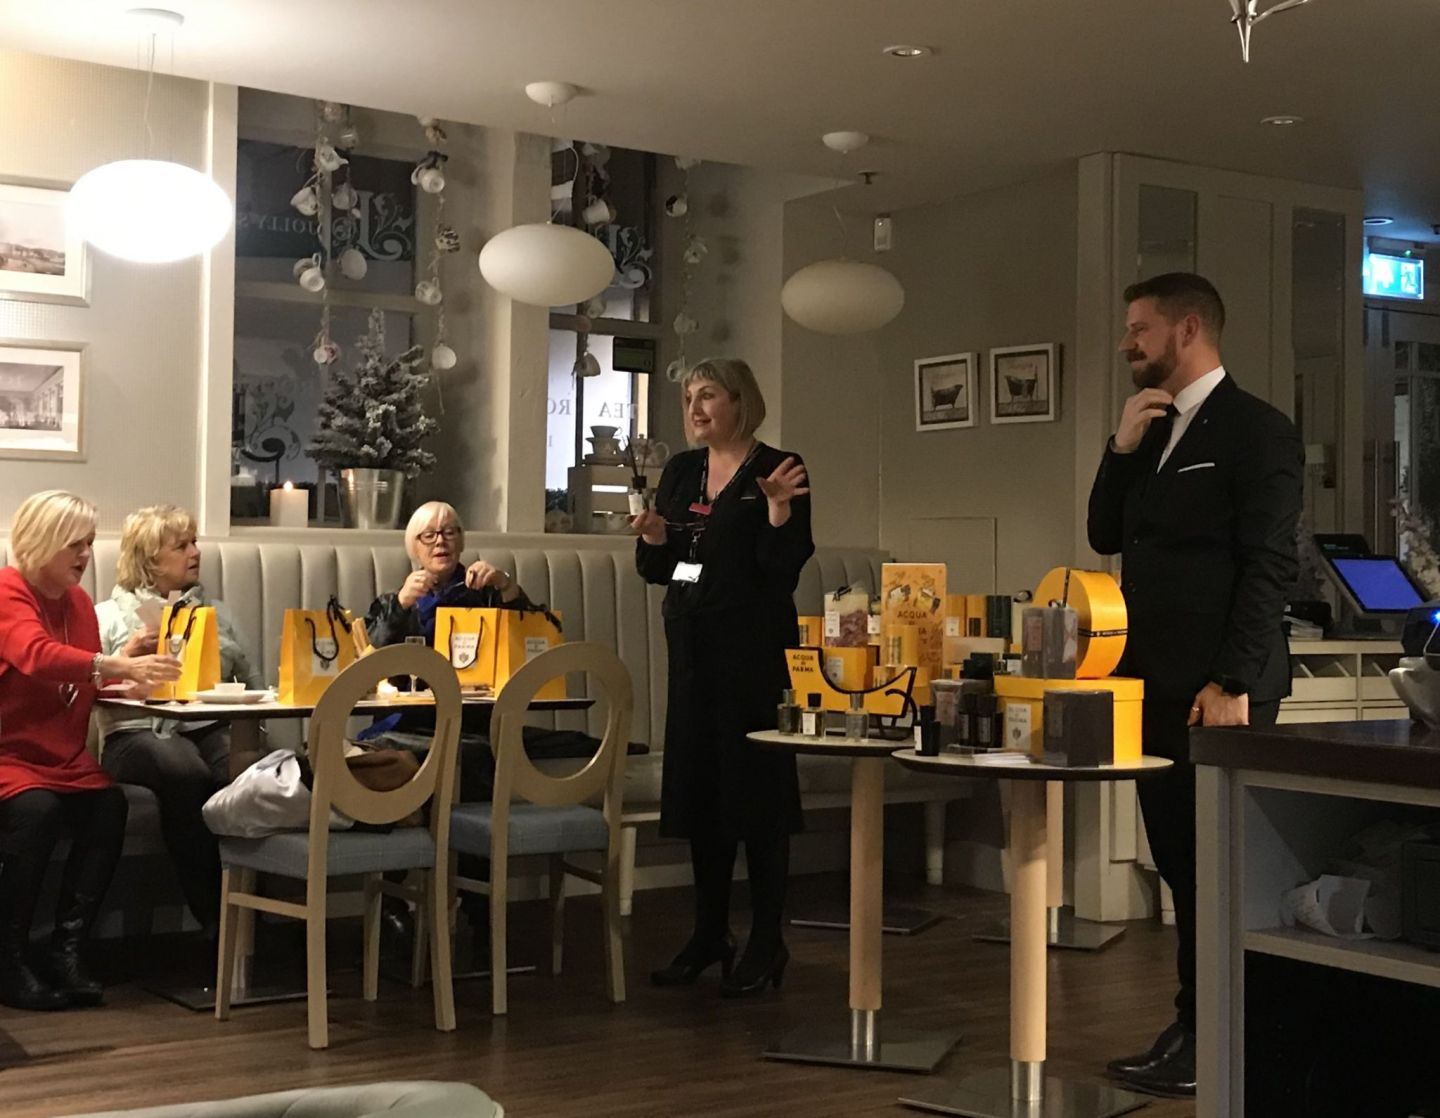 Acqua di Parma event with Debbie Cripps and Gary Collett